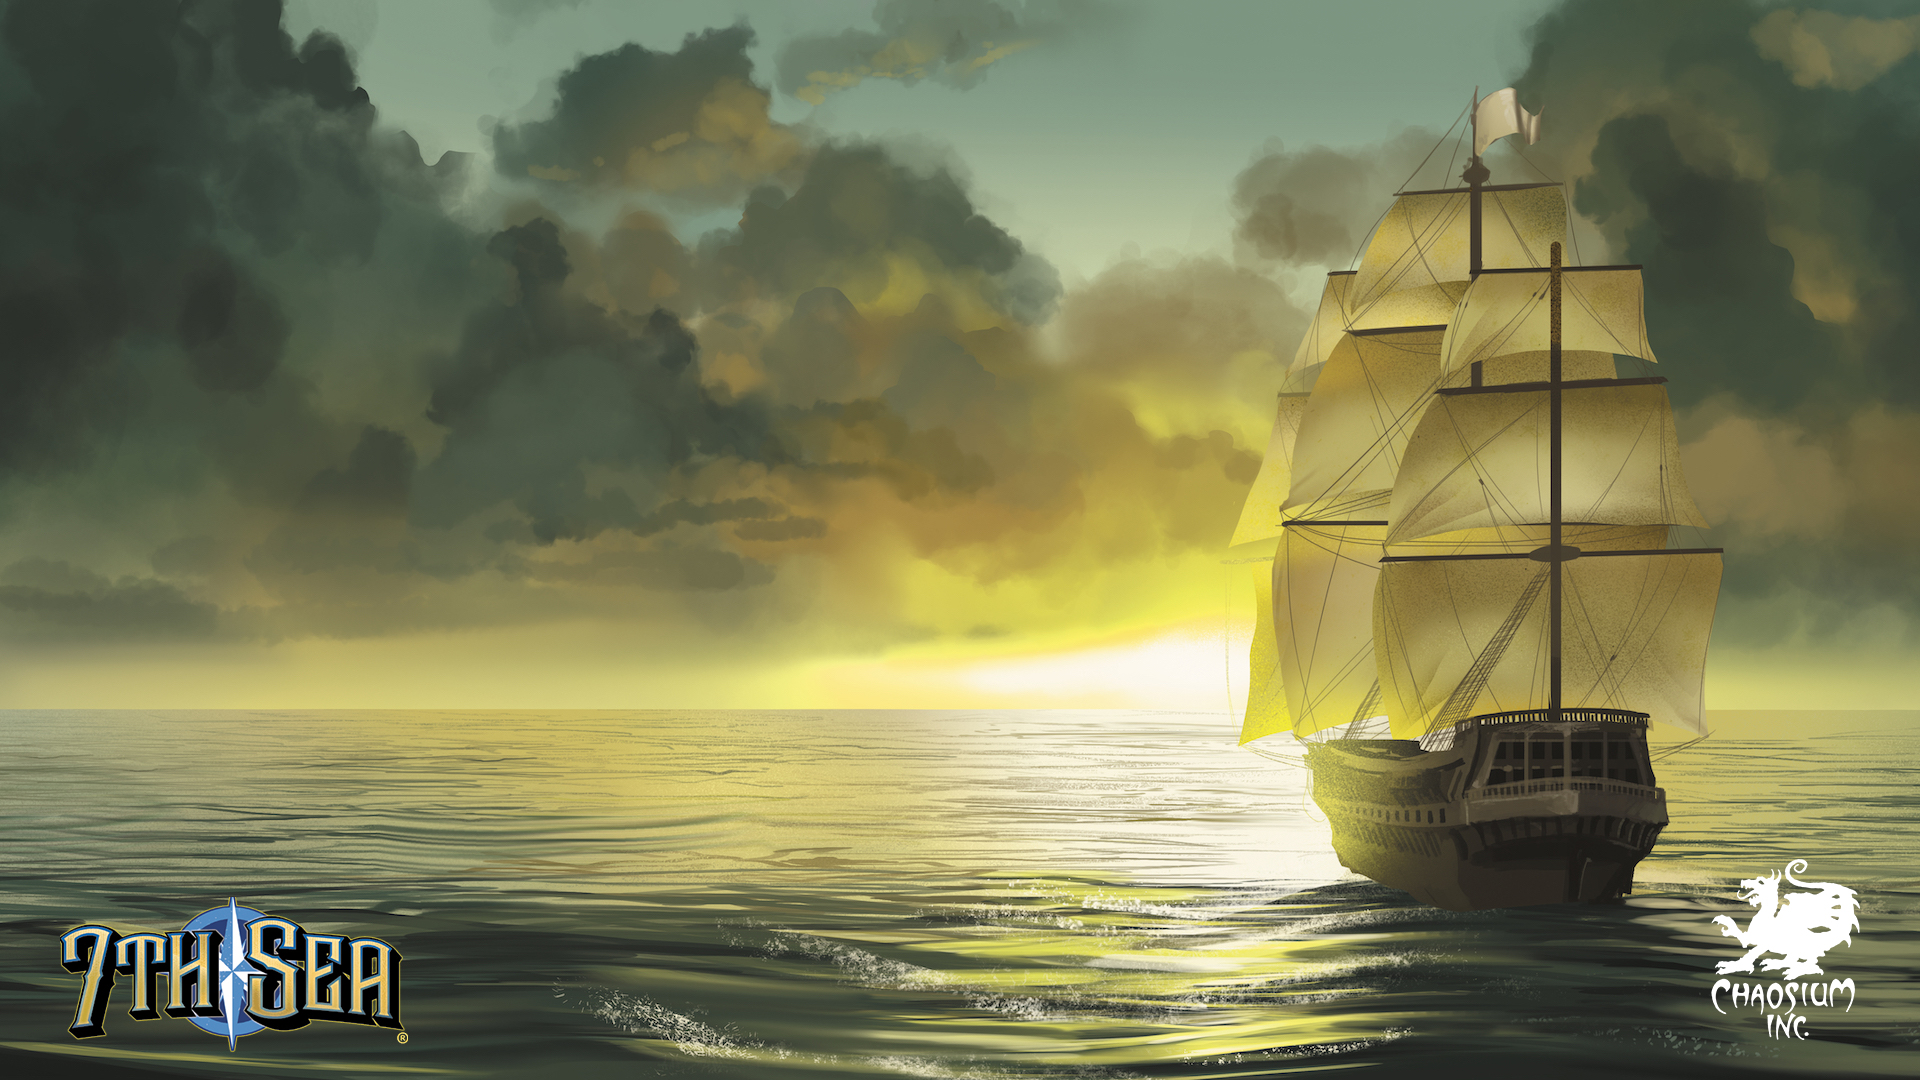 7th Sea Background - Sailing at Sunset